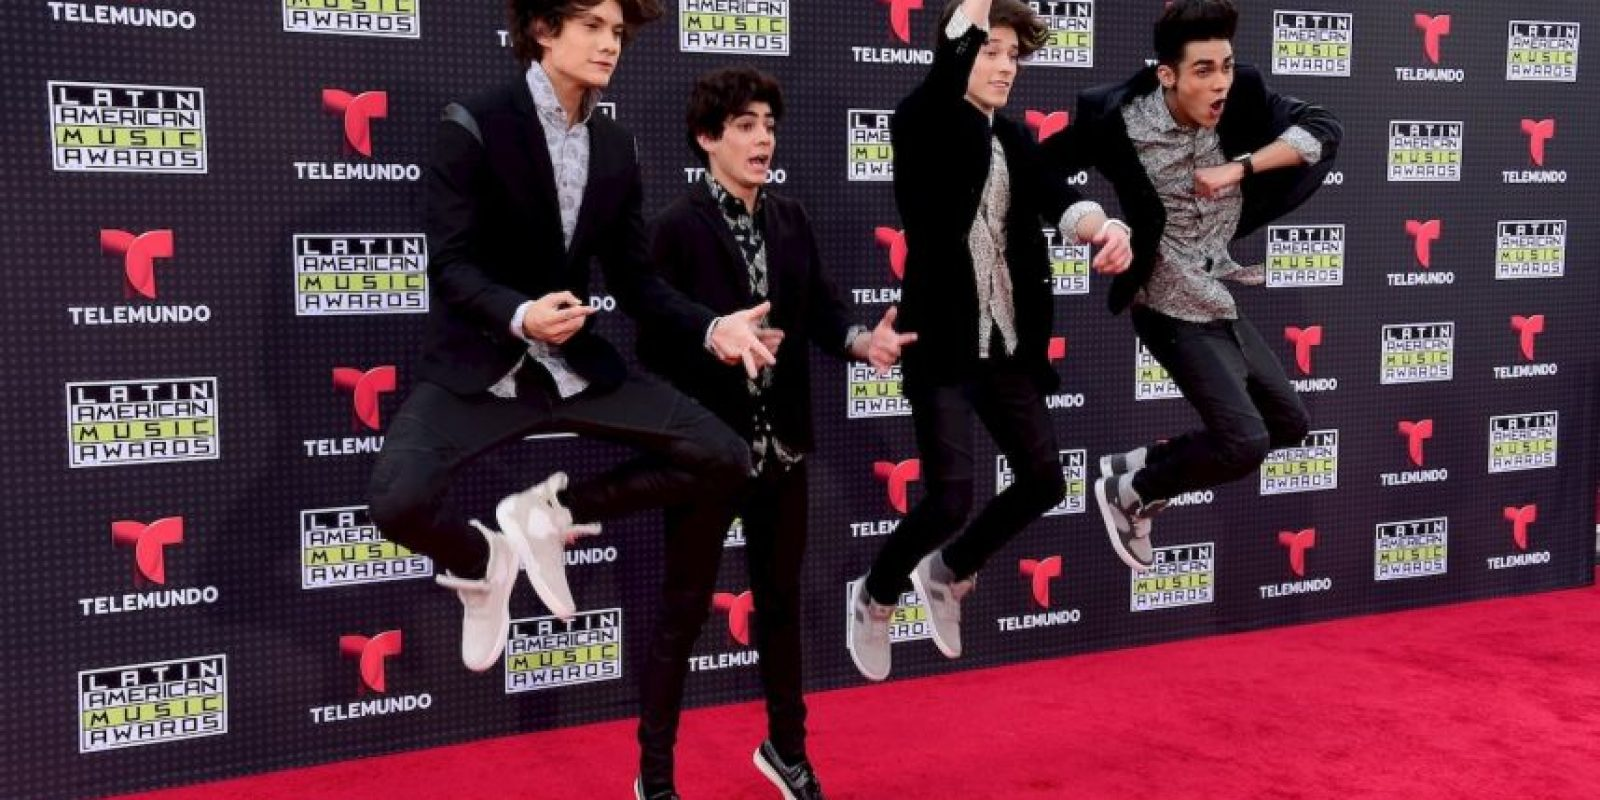 Los integrantes de la boyband CD9 causaron furor entre el público adolescente. Foto: Getty Images